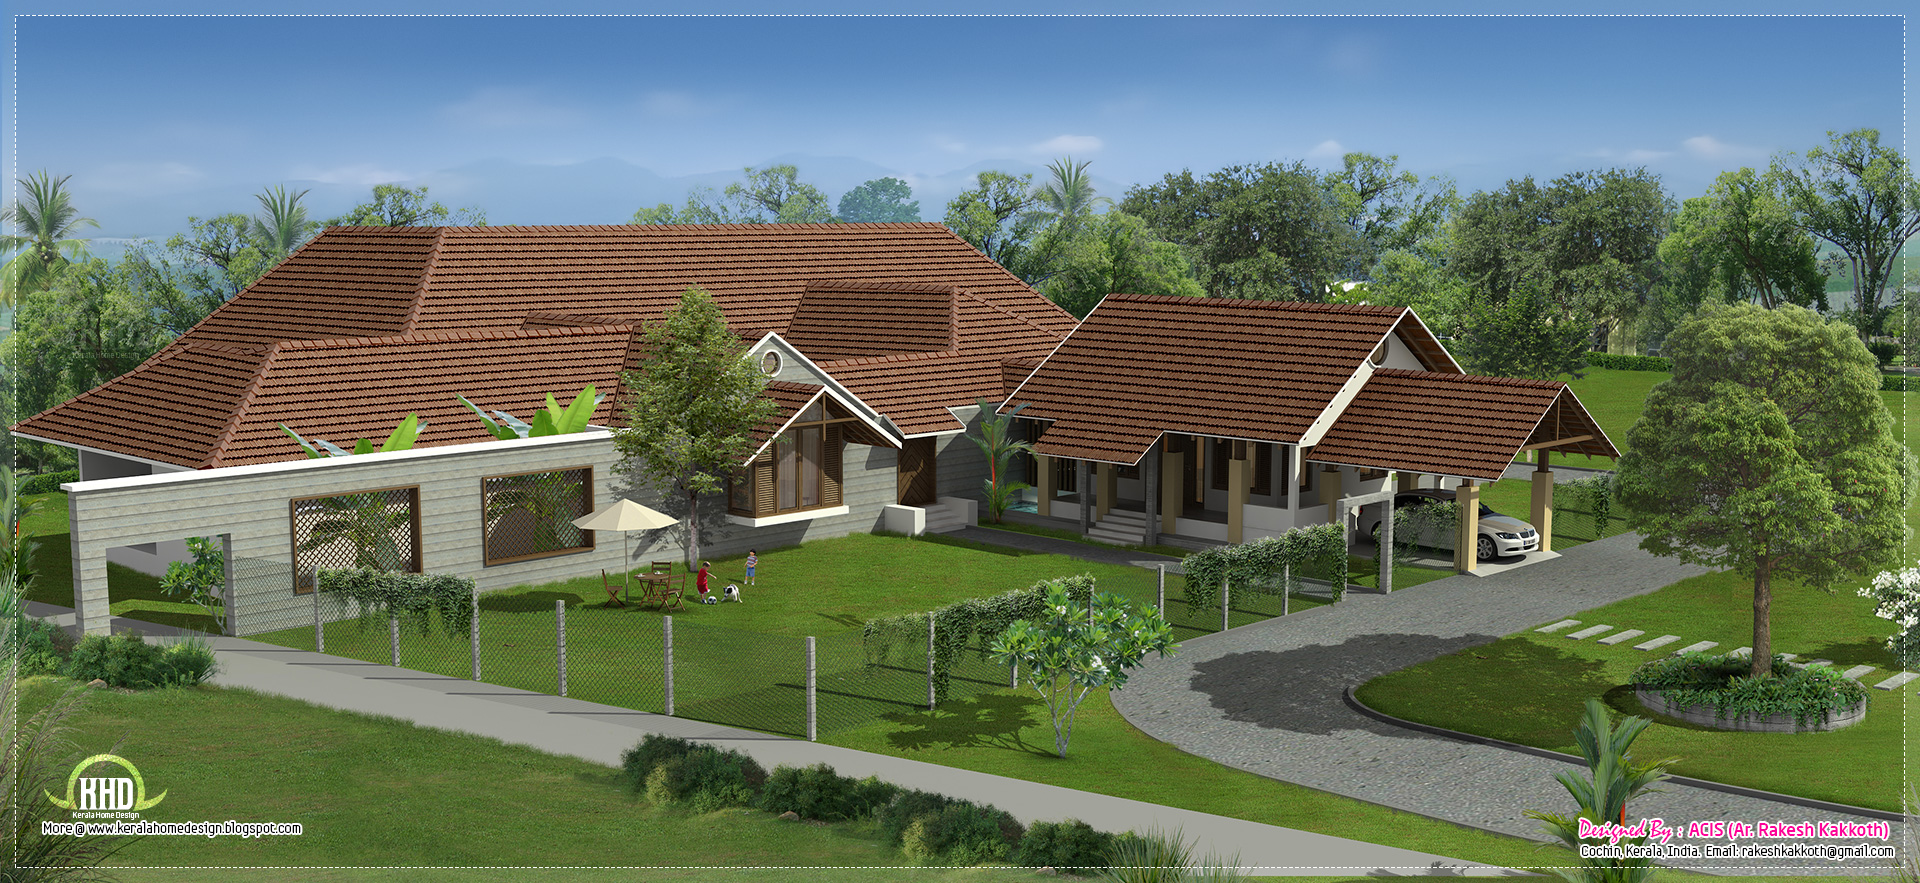 Luxury bungalow exterior design kerala home design and for Luxury bungalow designs